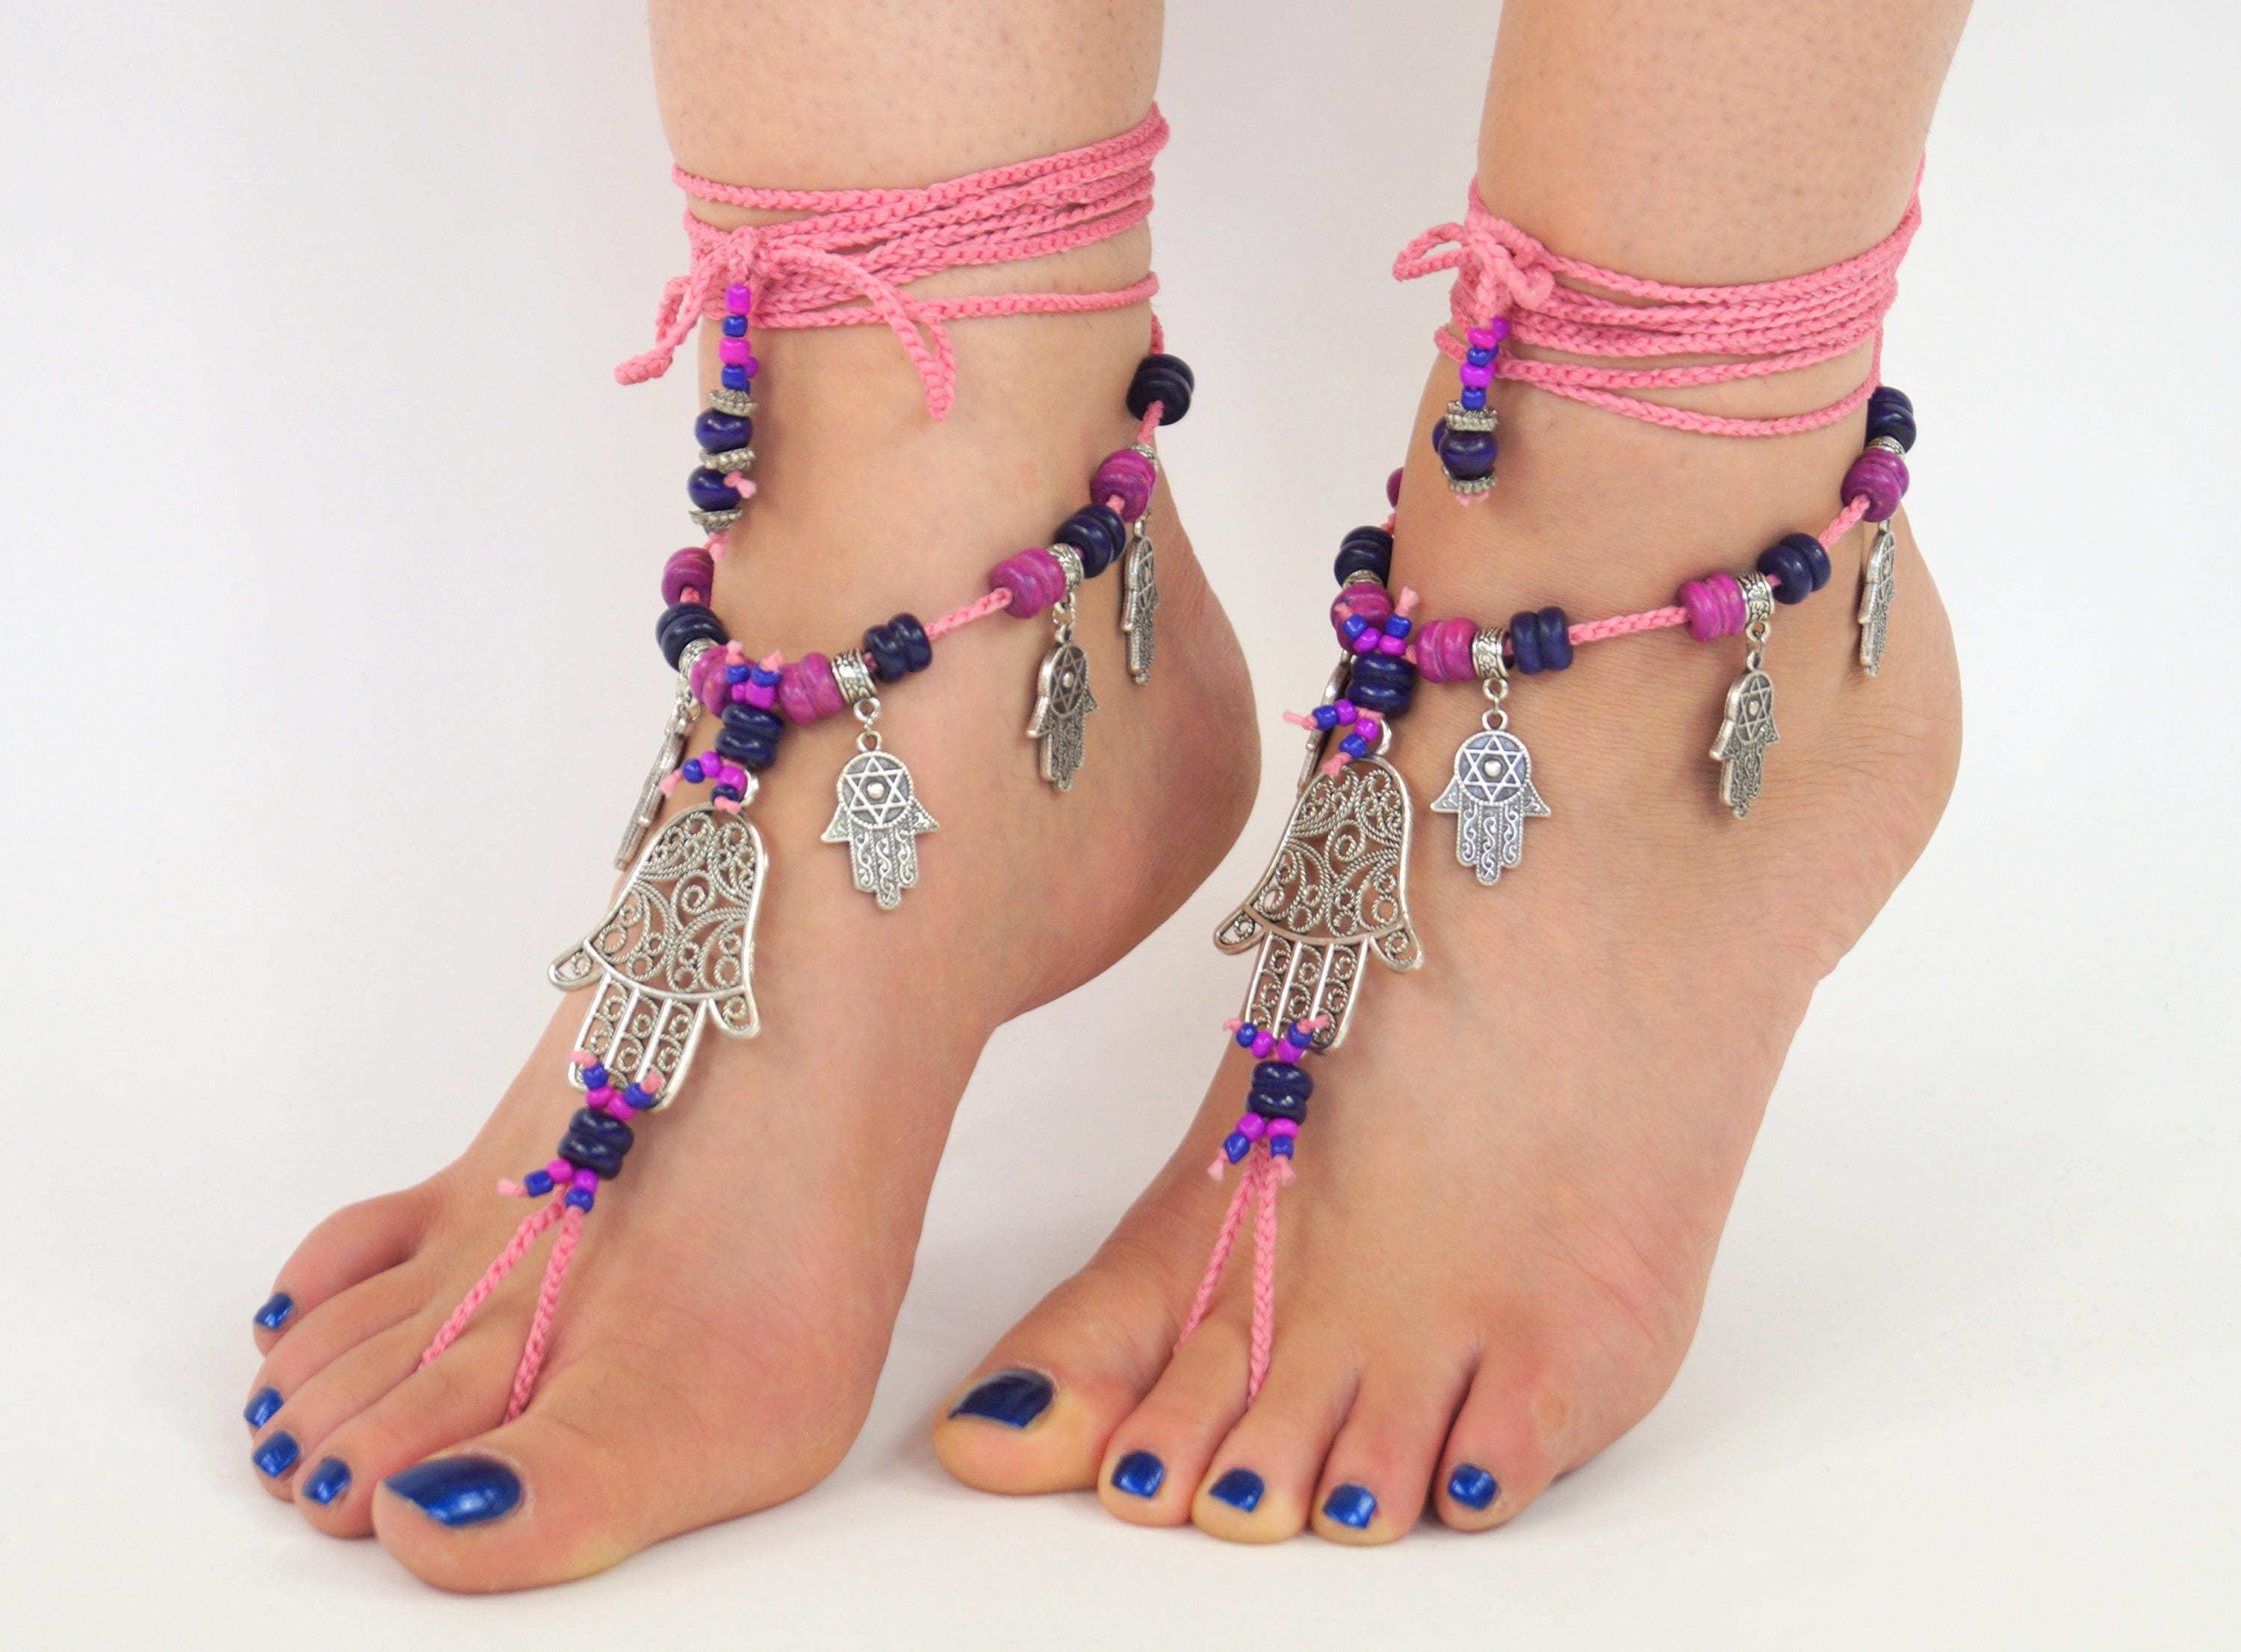 product accessories foot gold jewelry anklets rhinestone ring from toe sandals barefoot yoga bracelet women bracelets scorpion anklet unisexual